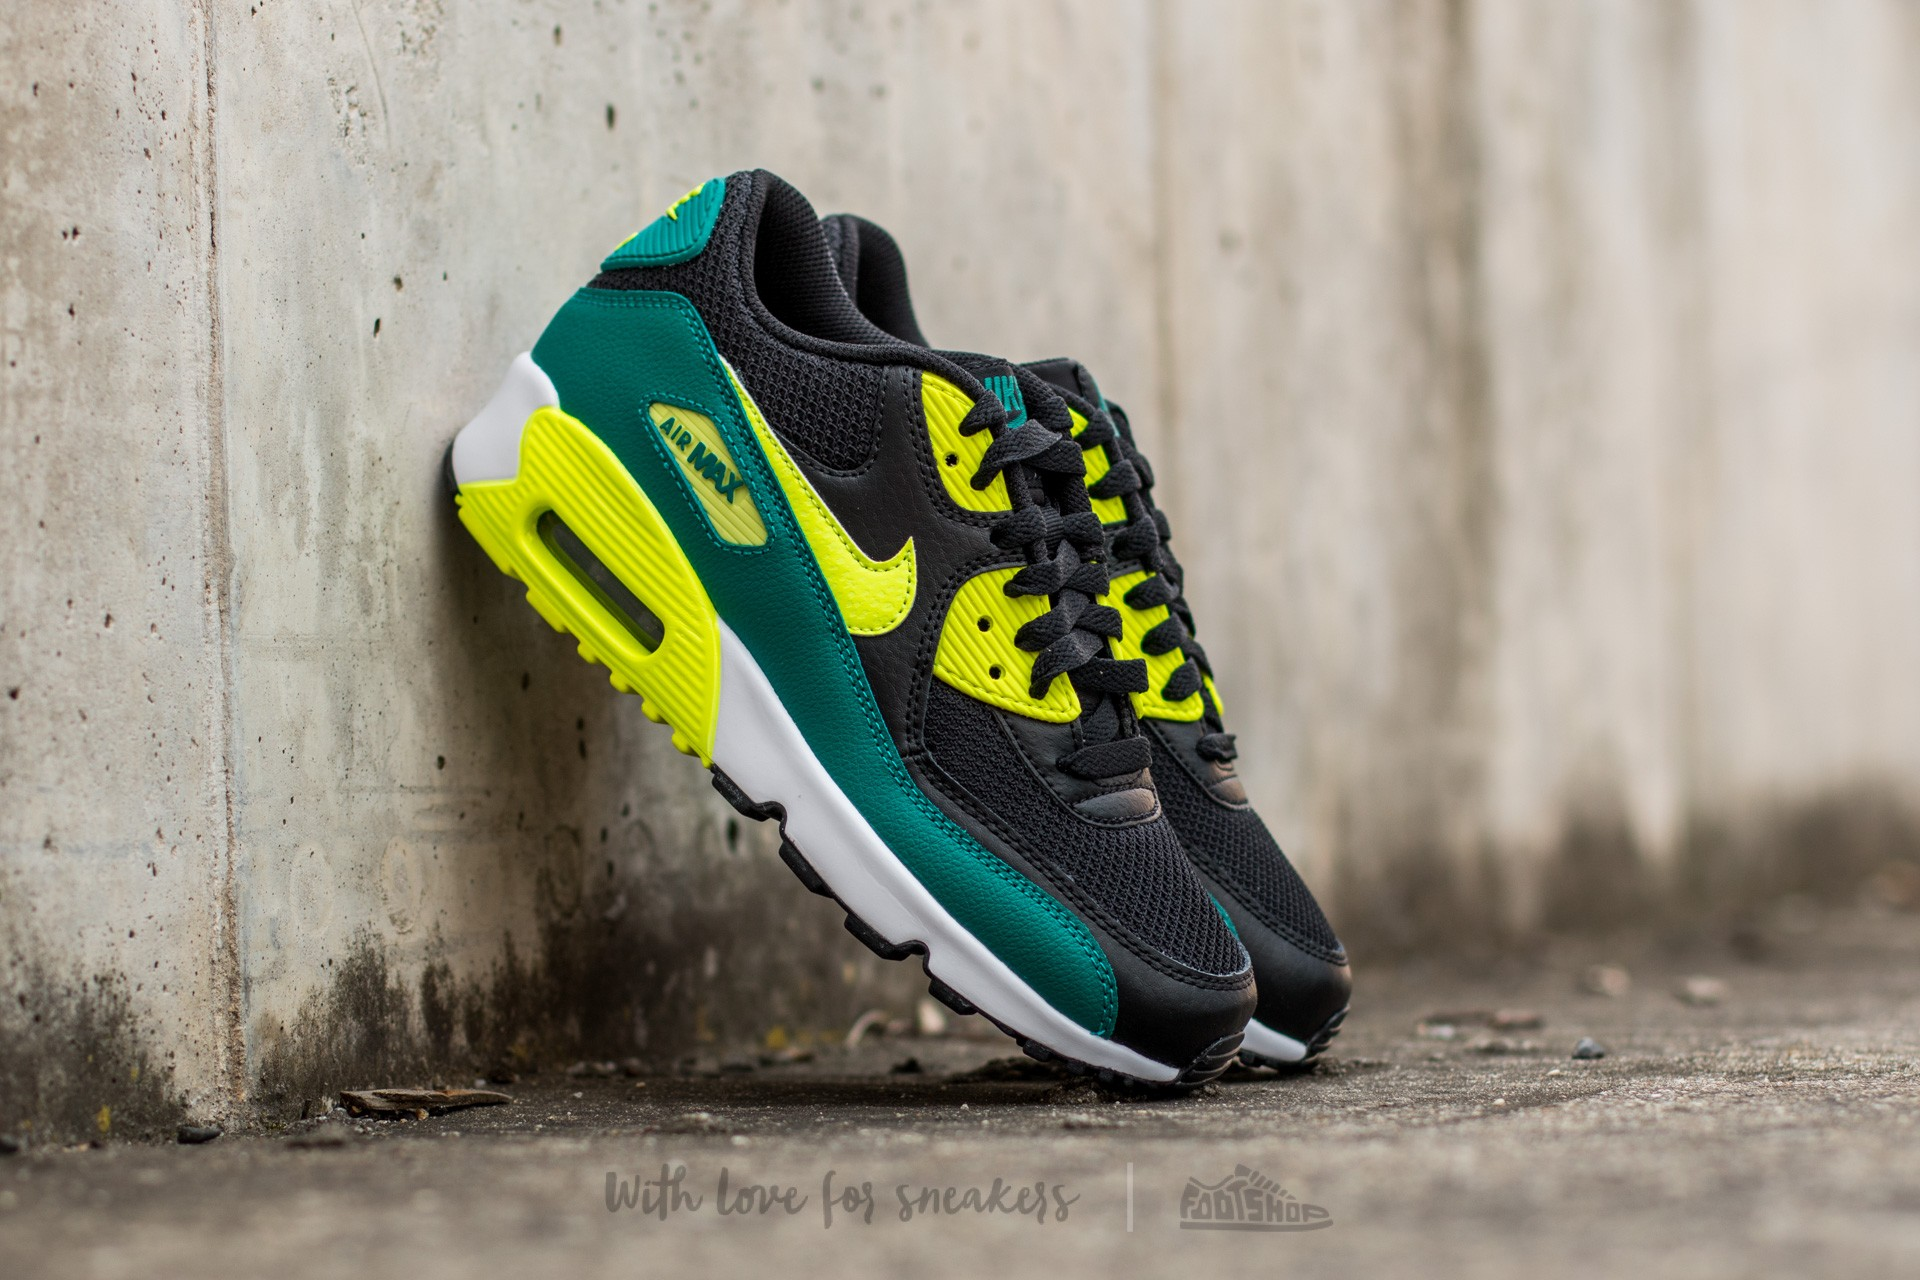 newest collection e3e31 0ab75 Nike Air Max 90 Mesh (GS) Black/ Volt-Rio Teal-White | Footshop